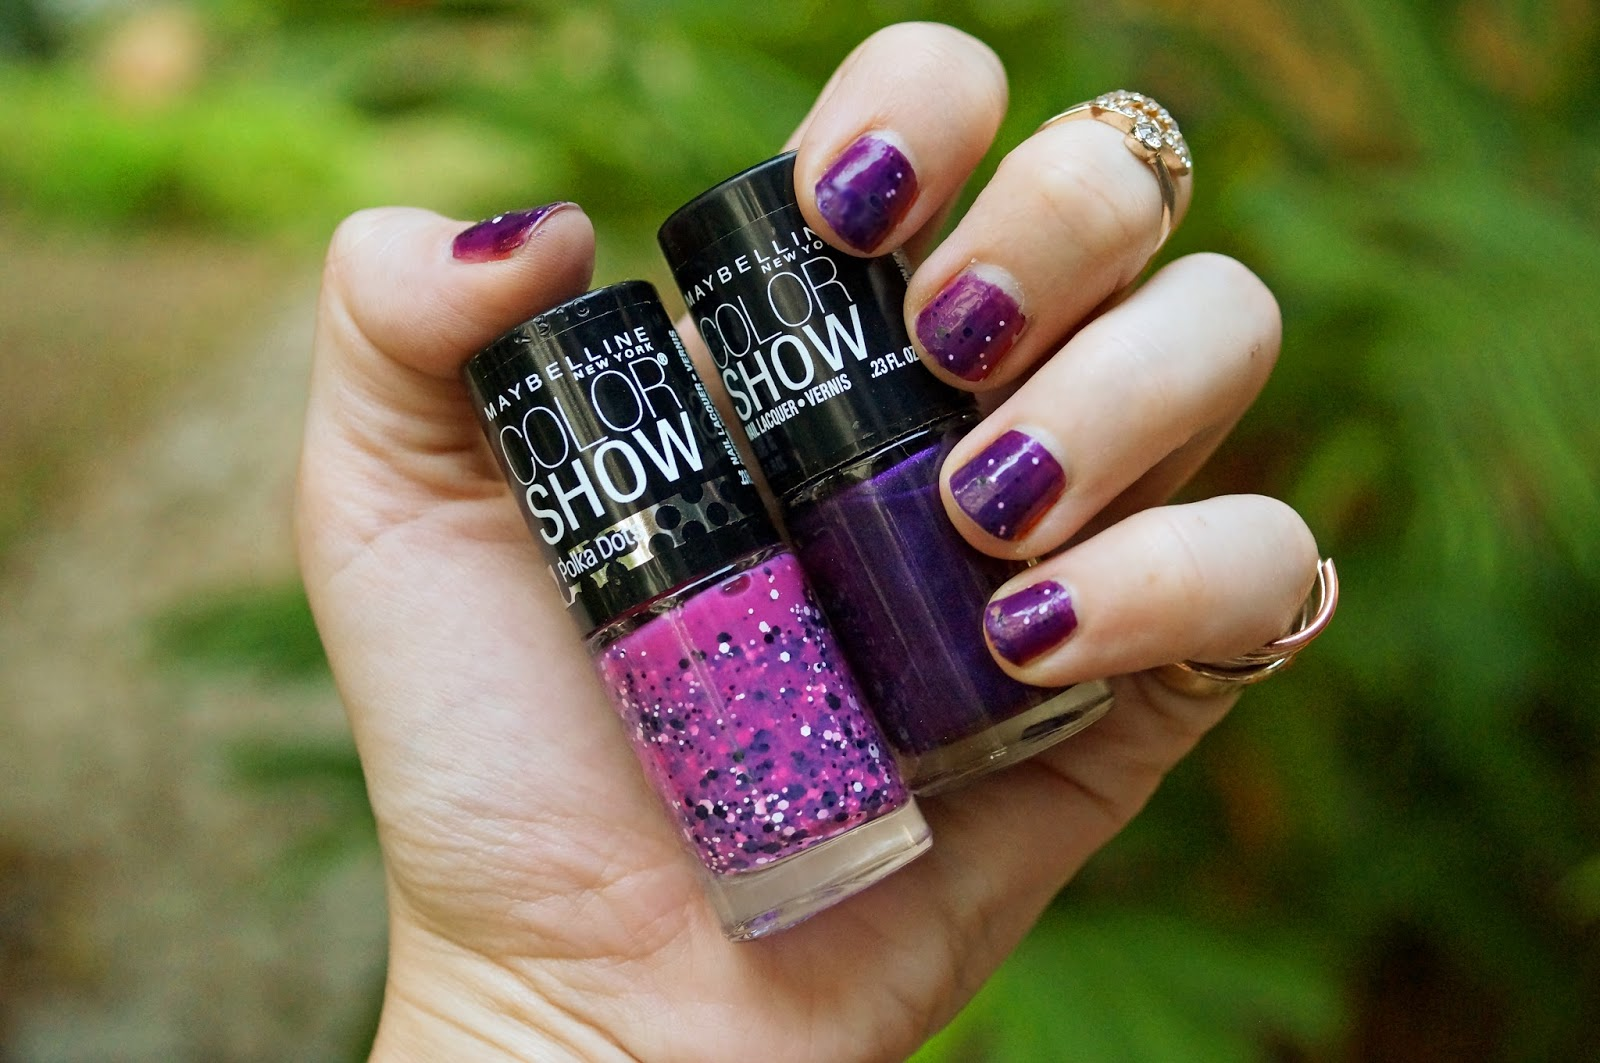 Maybelline's Color Show Nail Polish comes in beautiful colors and dries super fast!